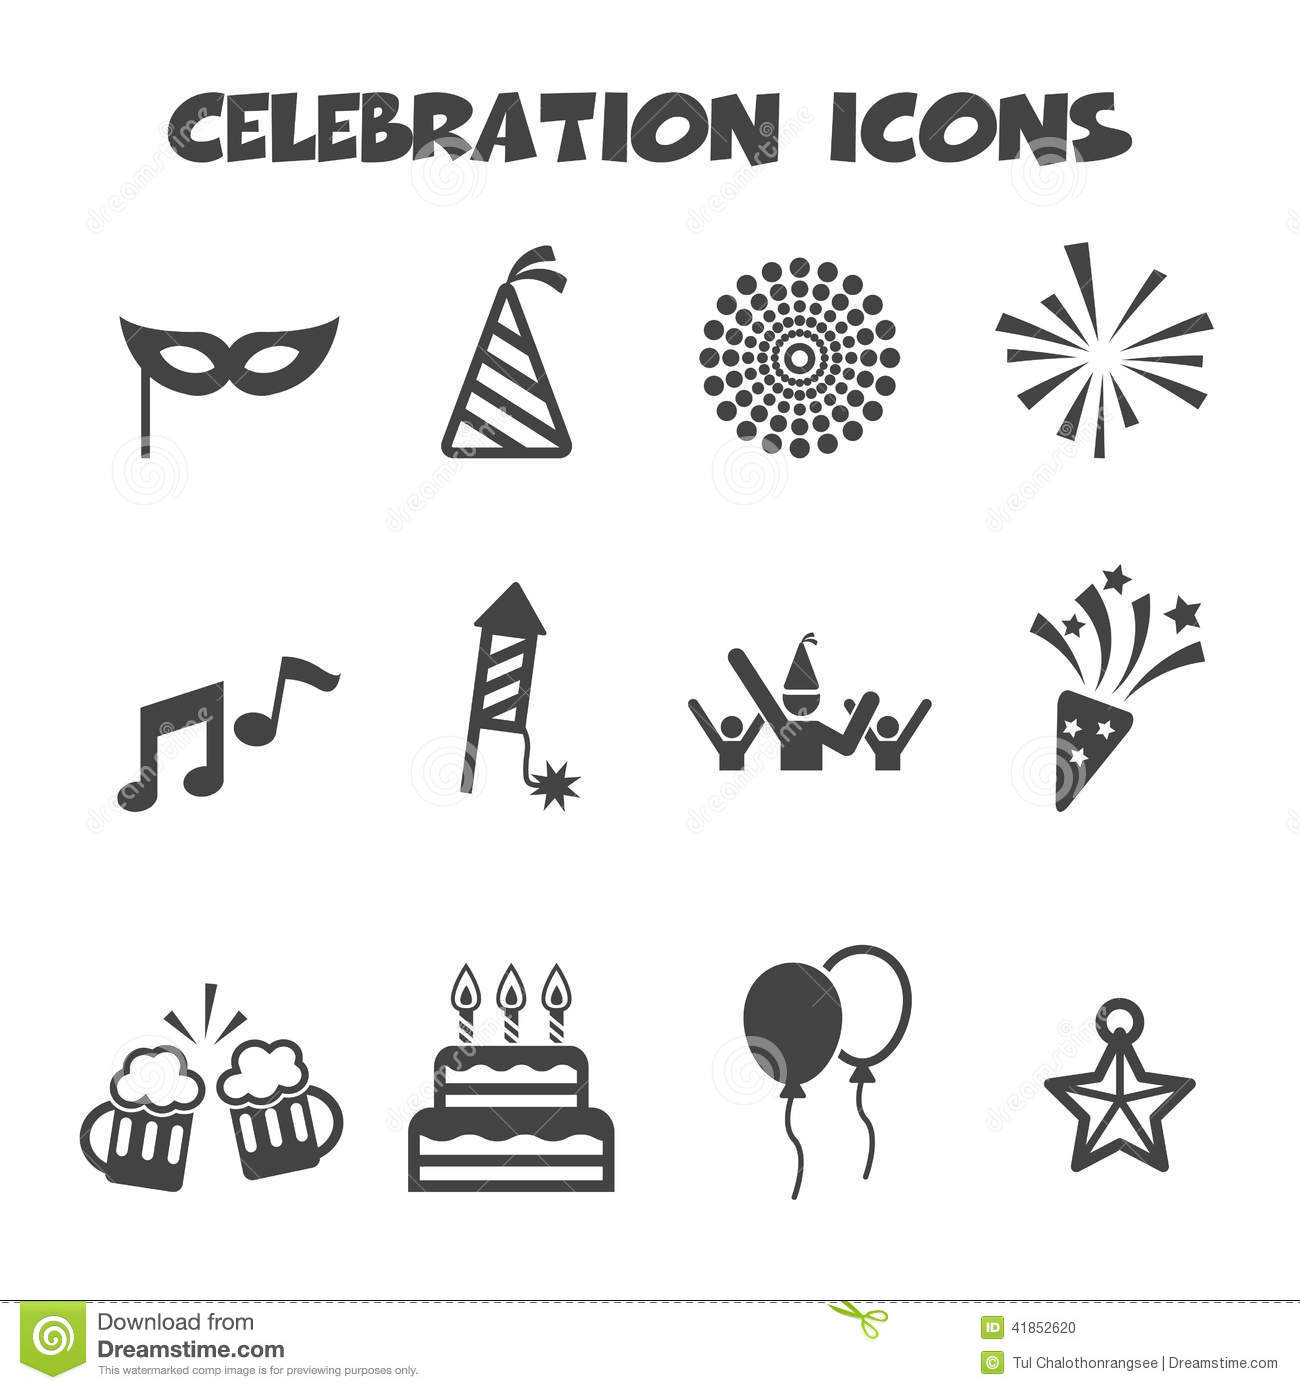 Robot Coloring Pages moreover Walking With God Youre Invited also Cars additionally Vestido De Novia in addition Stock Illustration Celebration Icons Mono Vector Symbols Image41852620. on birthday party black and white clipart